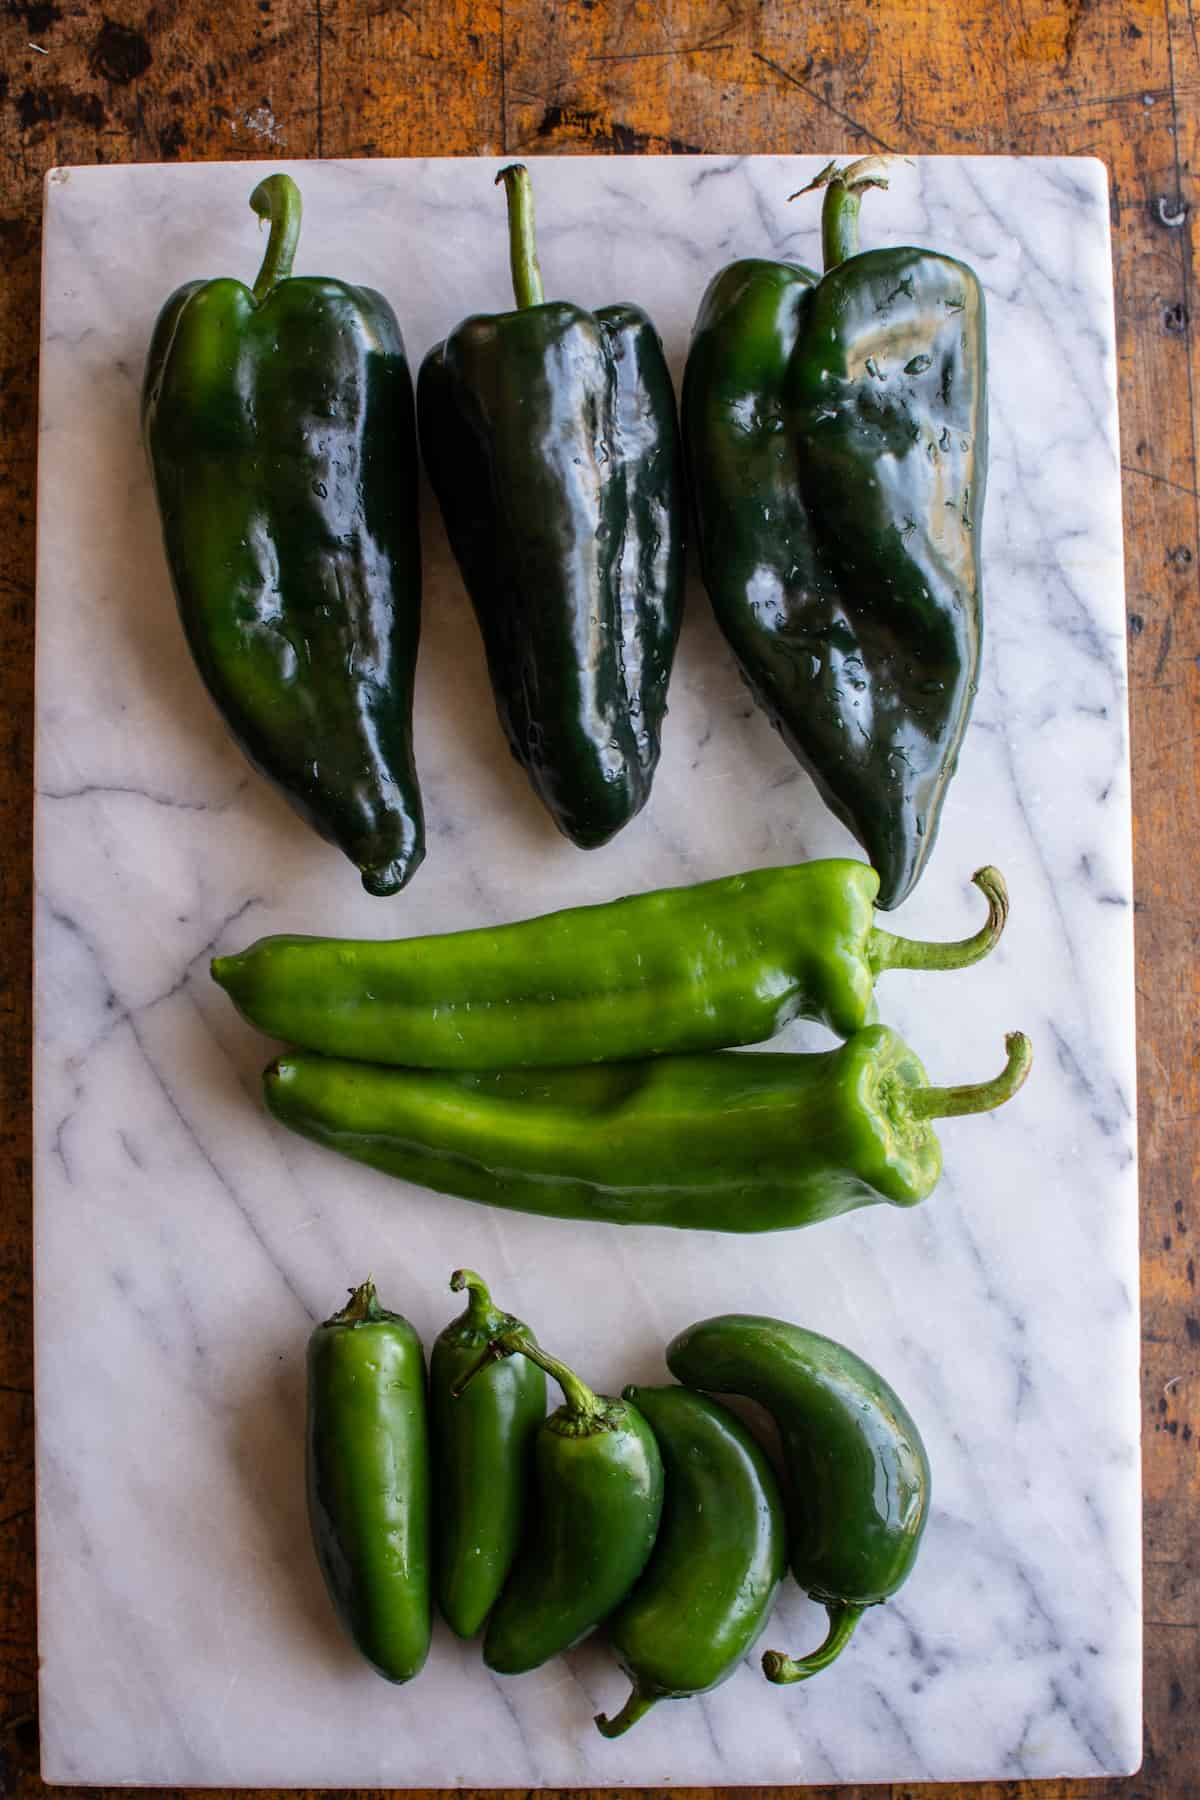 Poblano peppers, Anaheim chiles, and jalapeño peppers in rows on a marble cutting board that's sitting on a wood table.